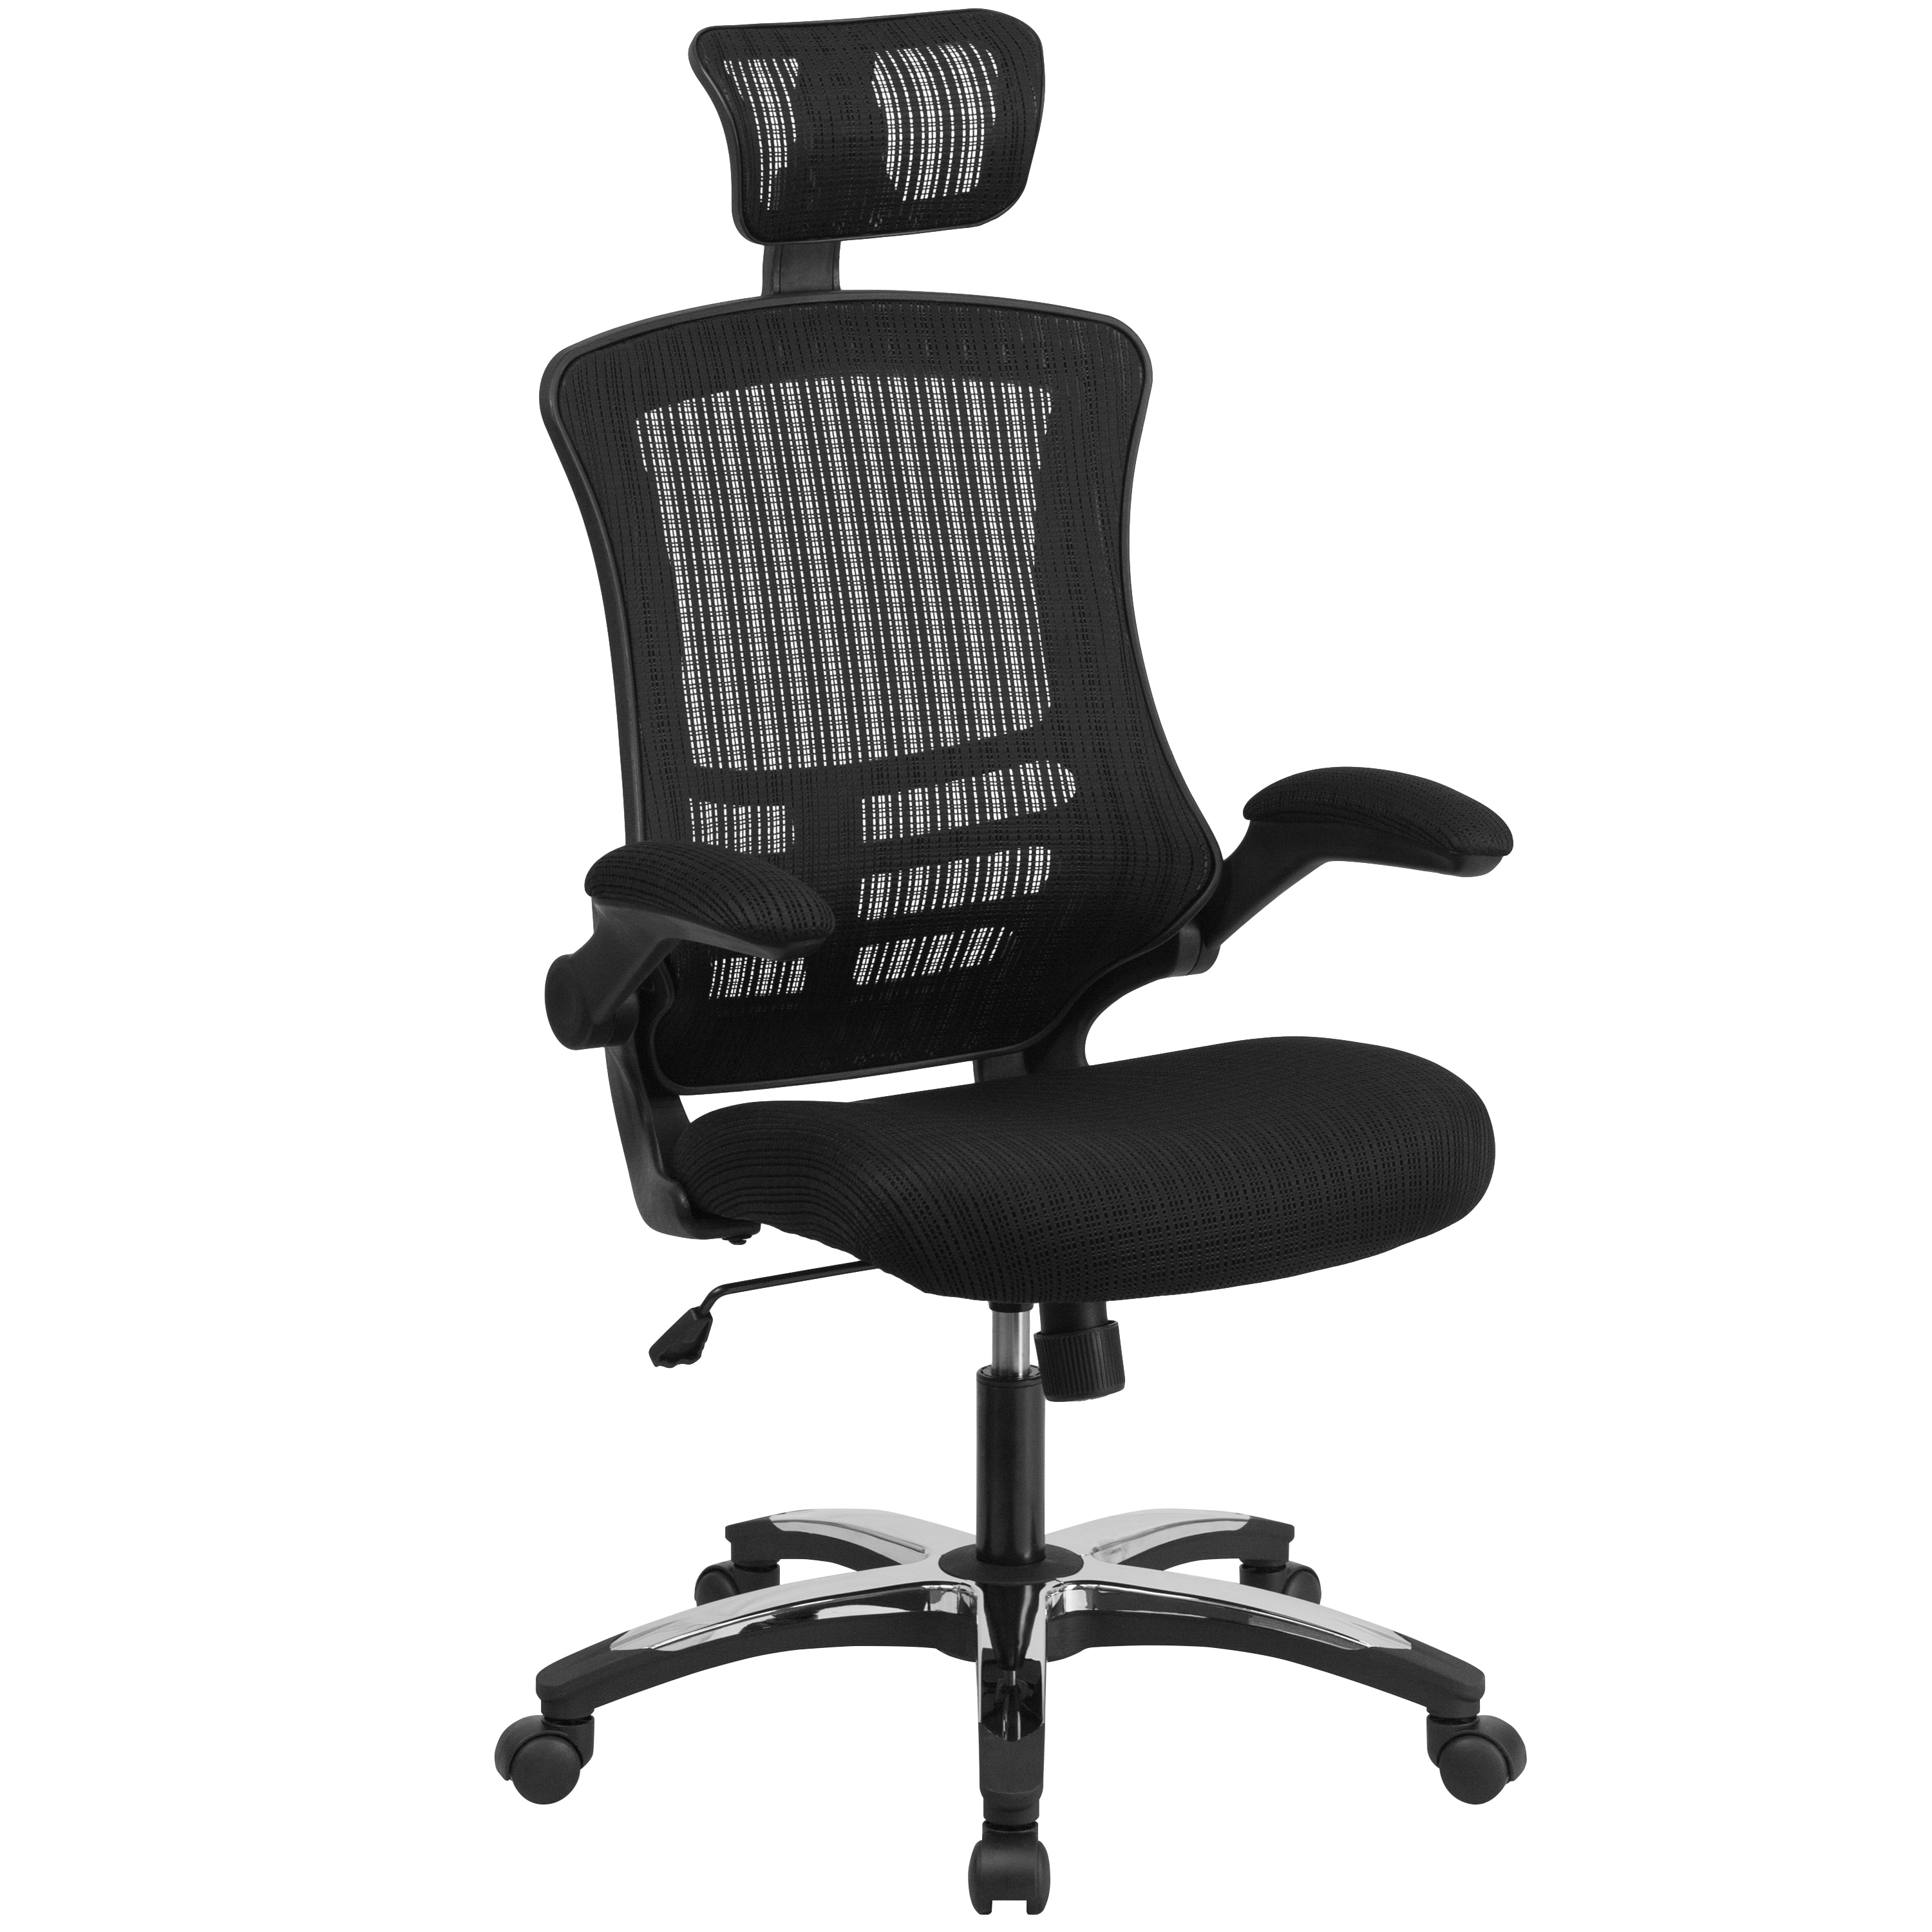 High Back Mesh Executive Swivel Office Chair With Flip Up Arms And Chrome Nylon Designer Base On Free Shipping Today